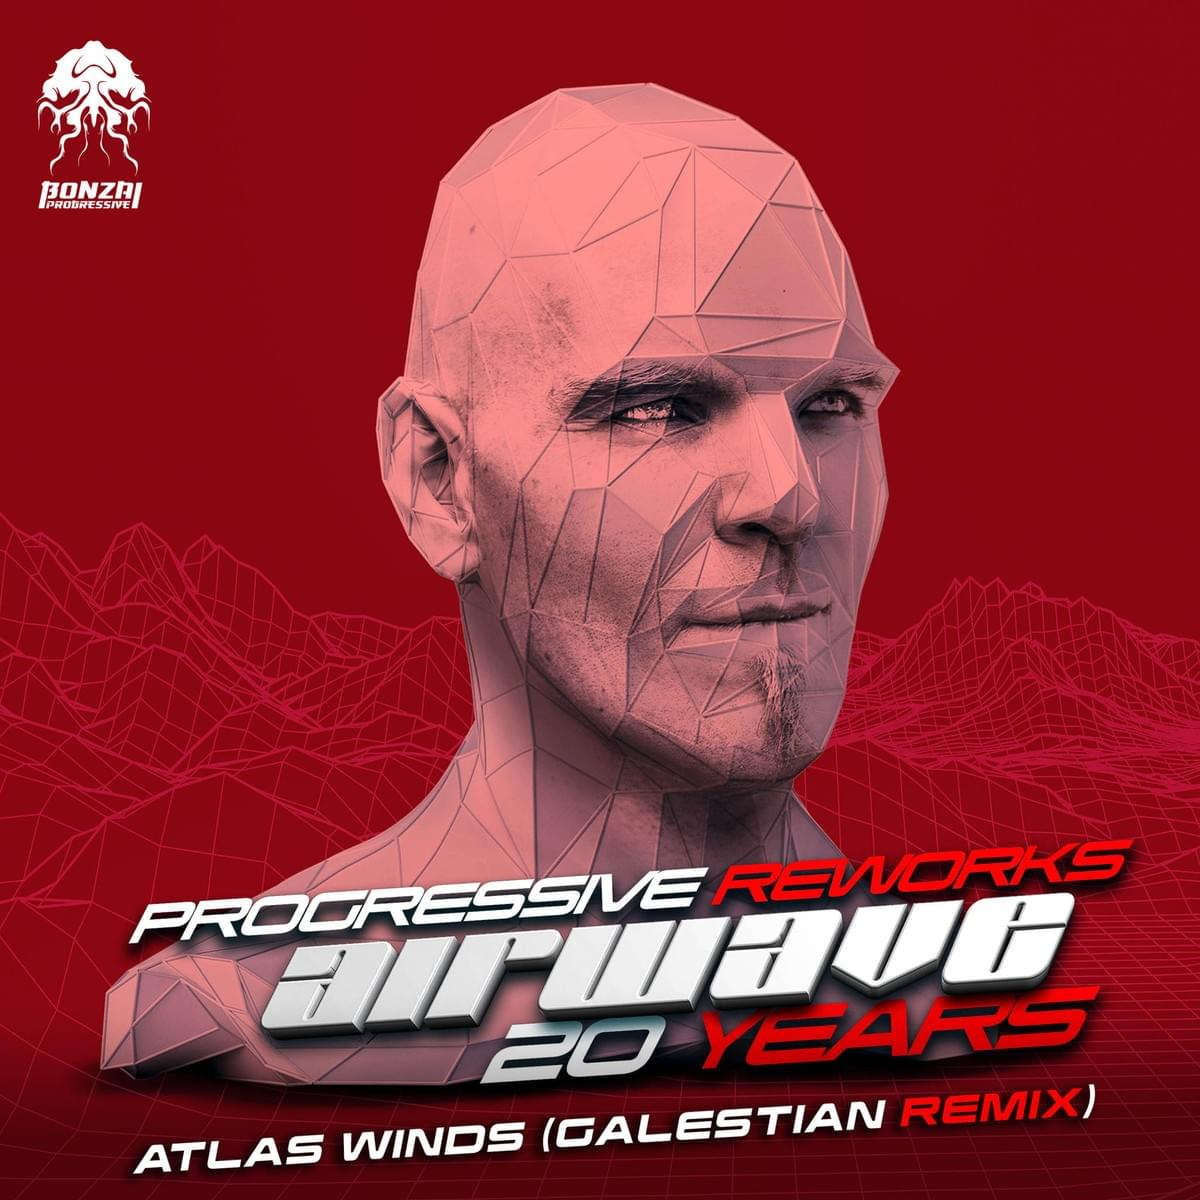 Airwave - Atlas Winds (Galestian Remix) [Bonzai Progressive]